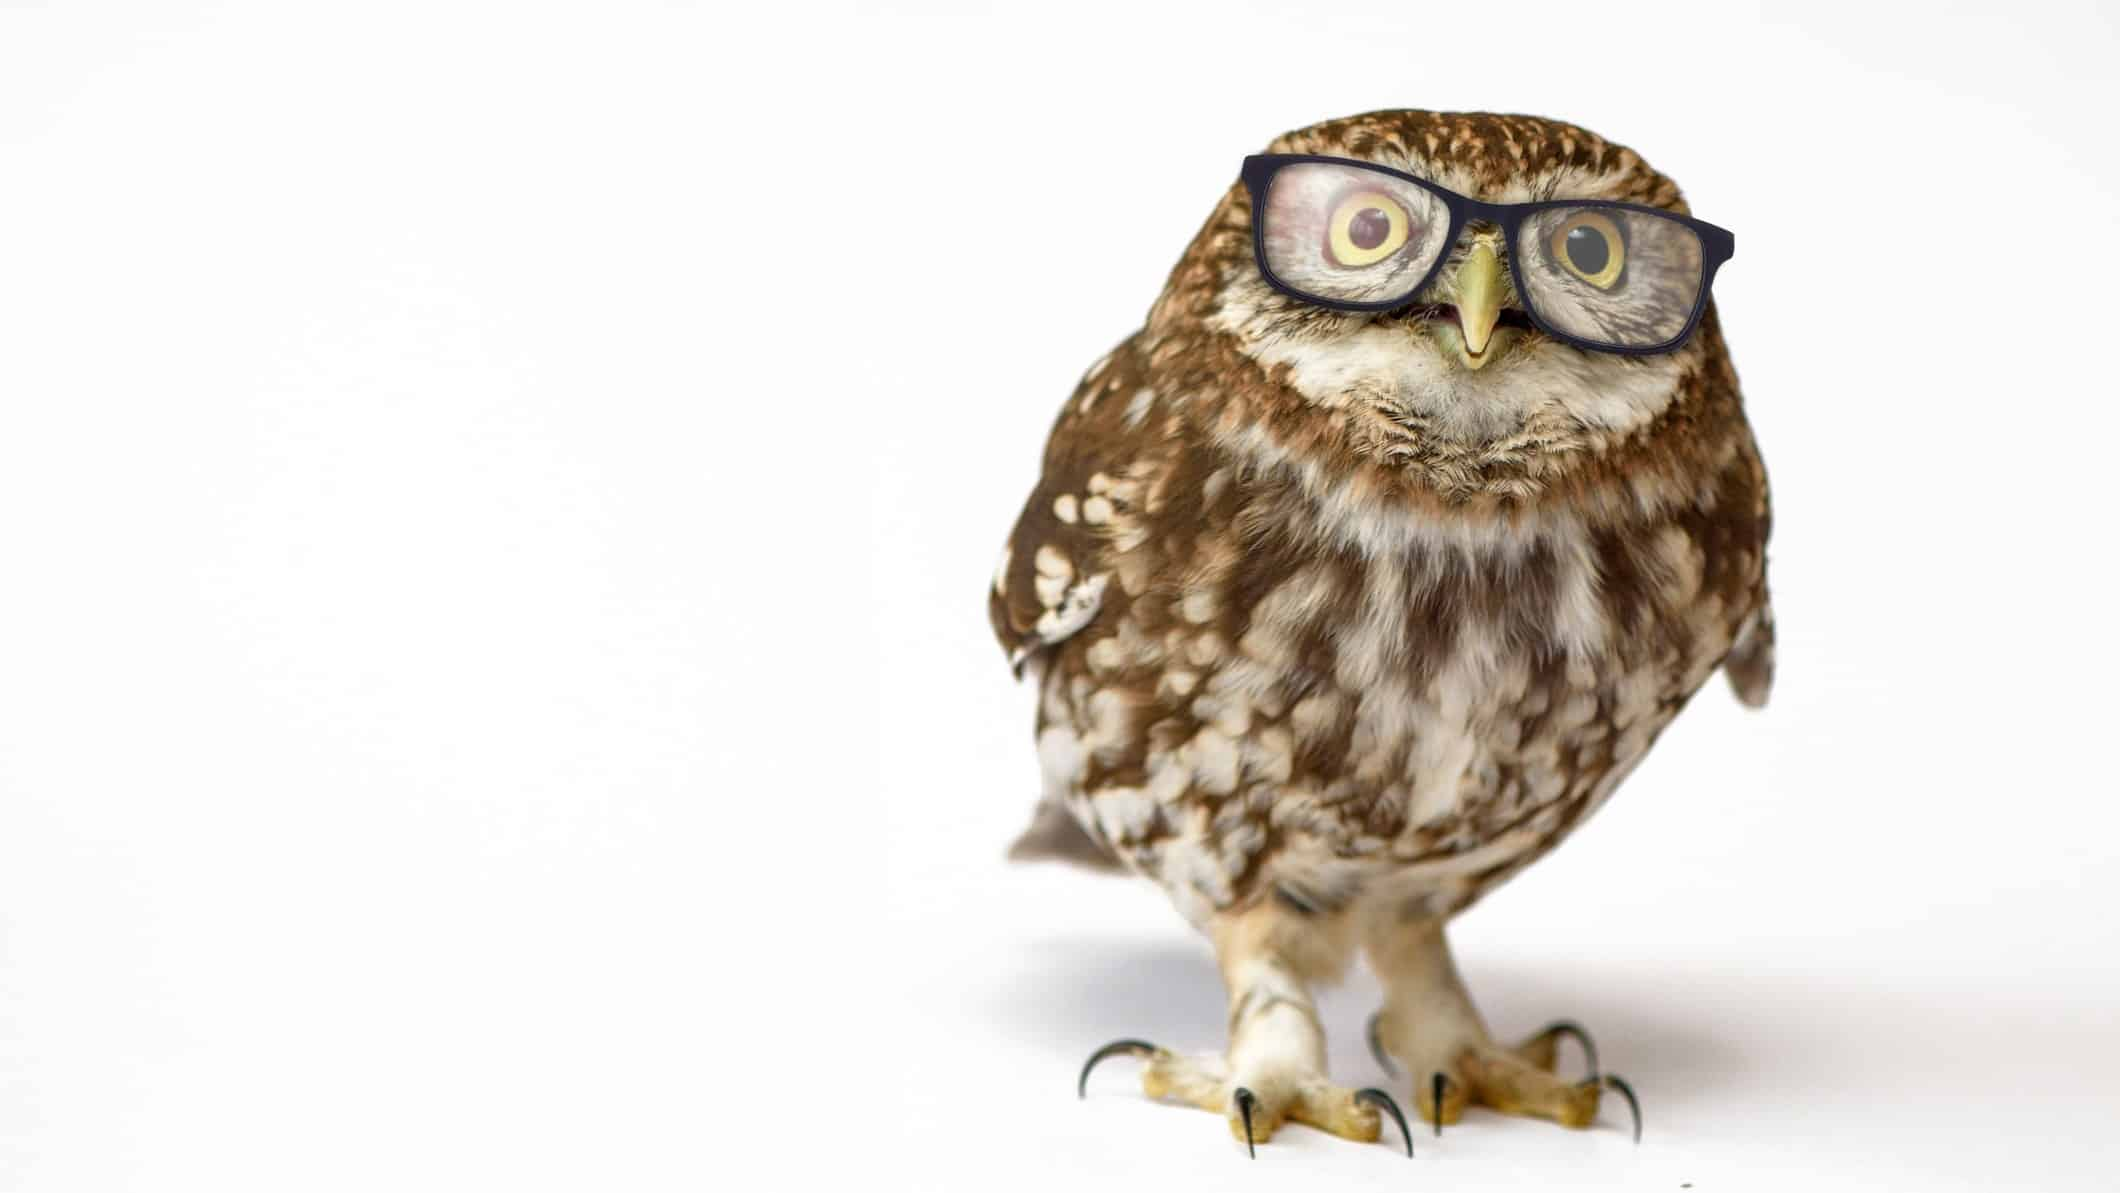 understanding asx share price represented by wise owl wearing glasses